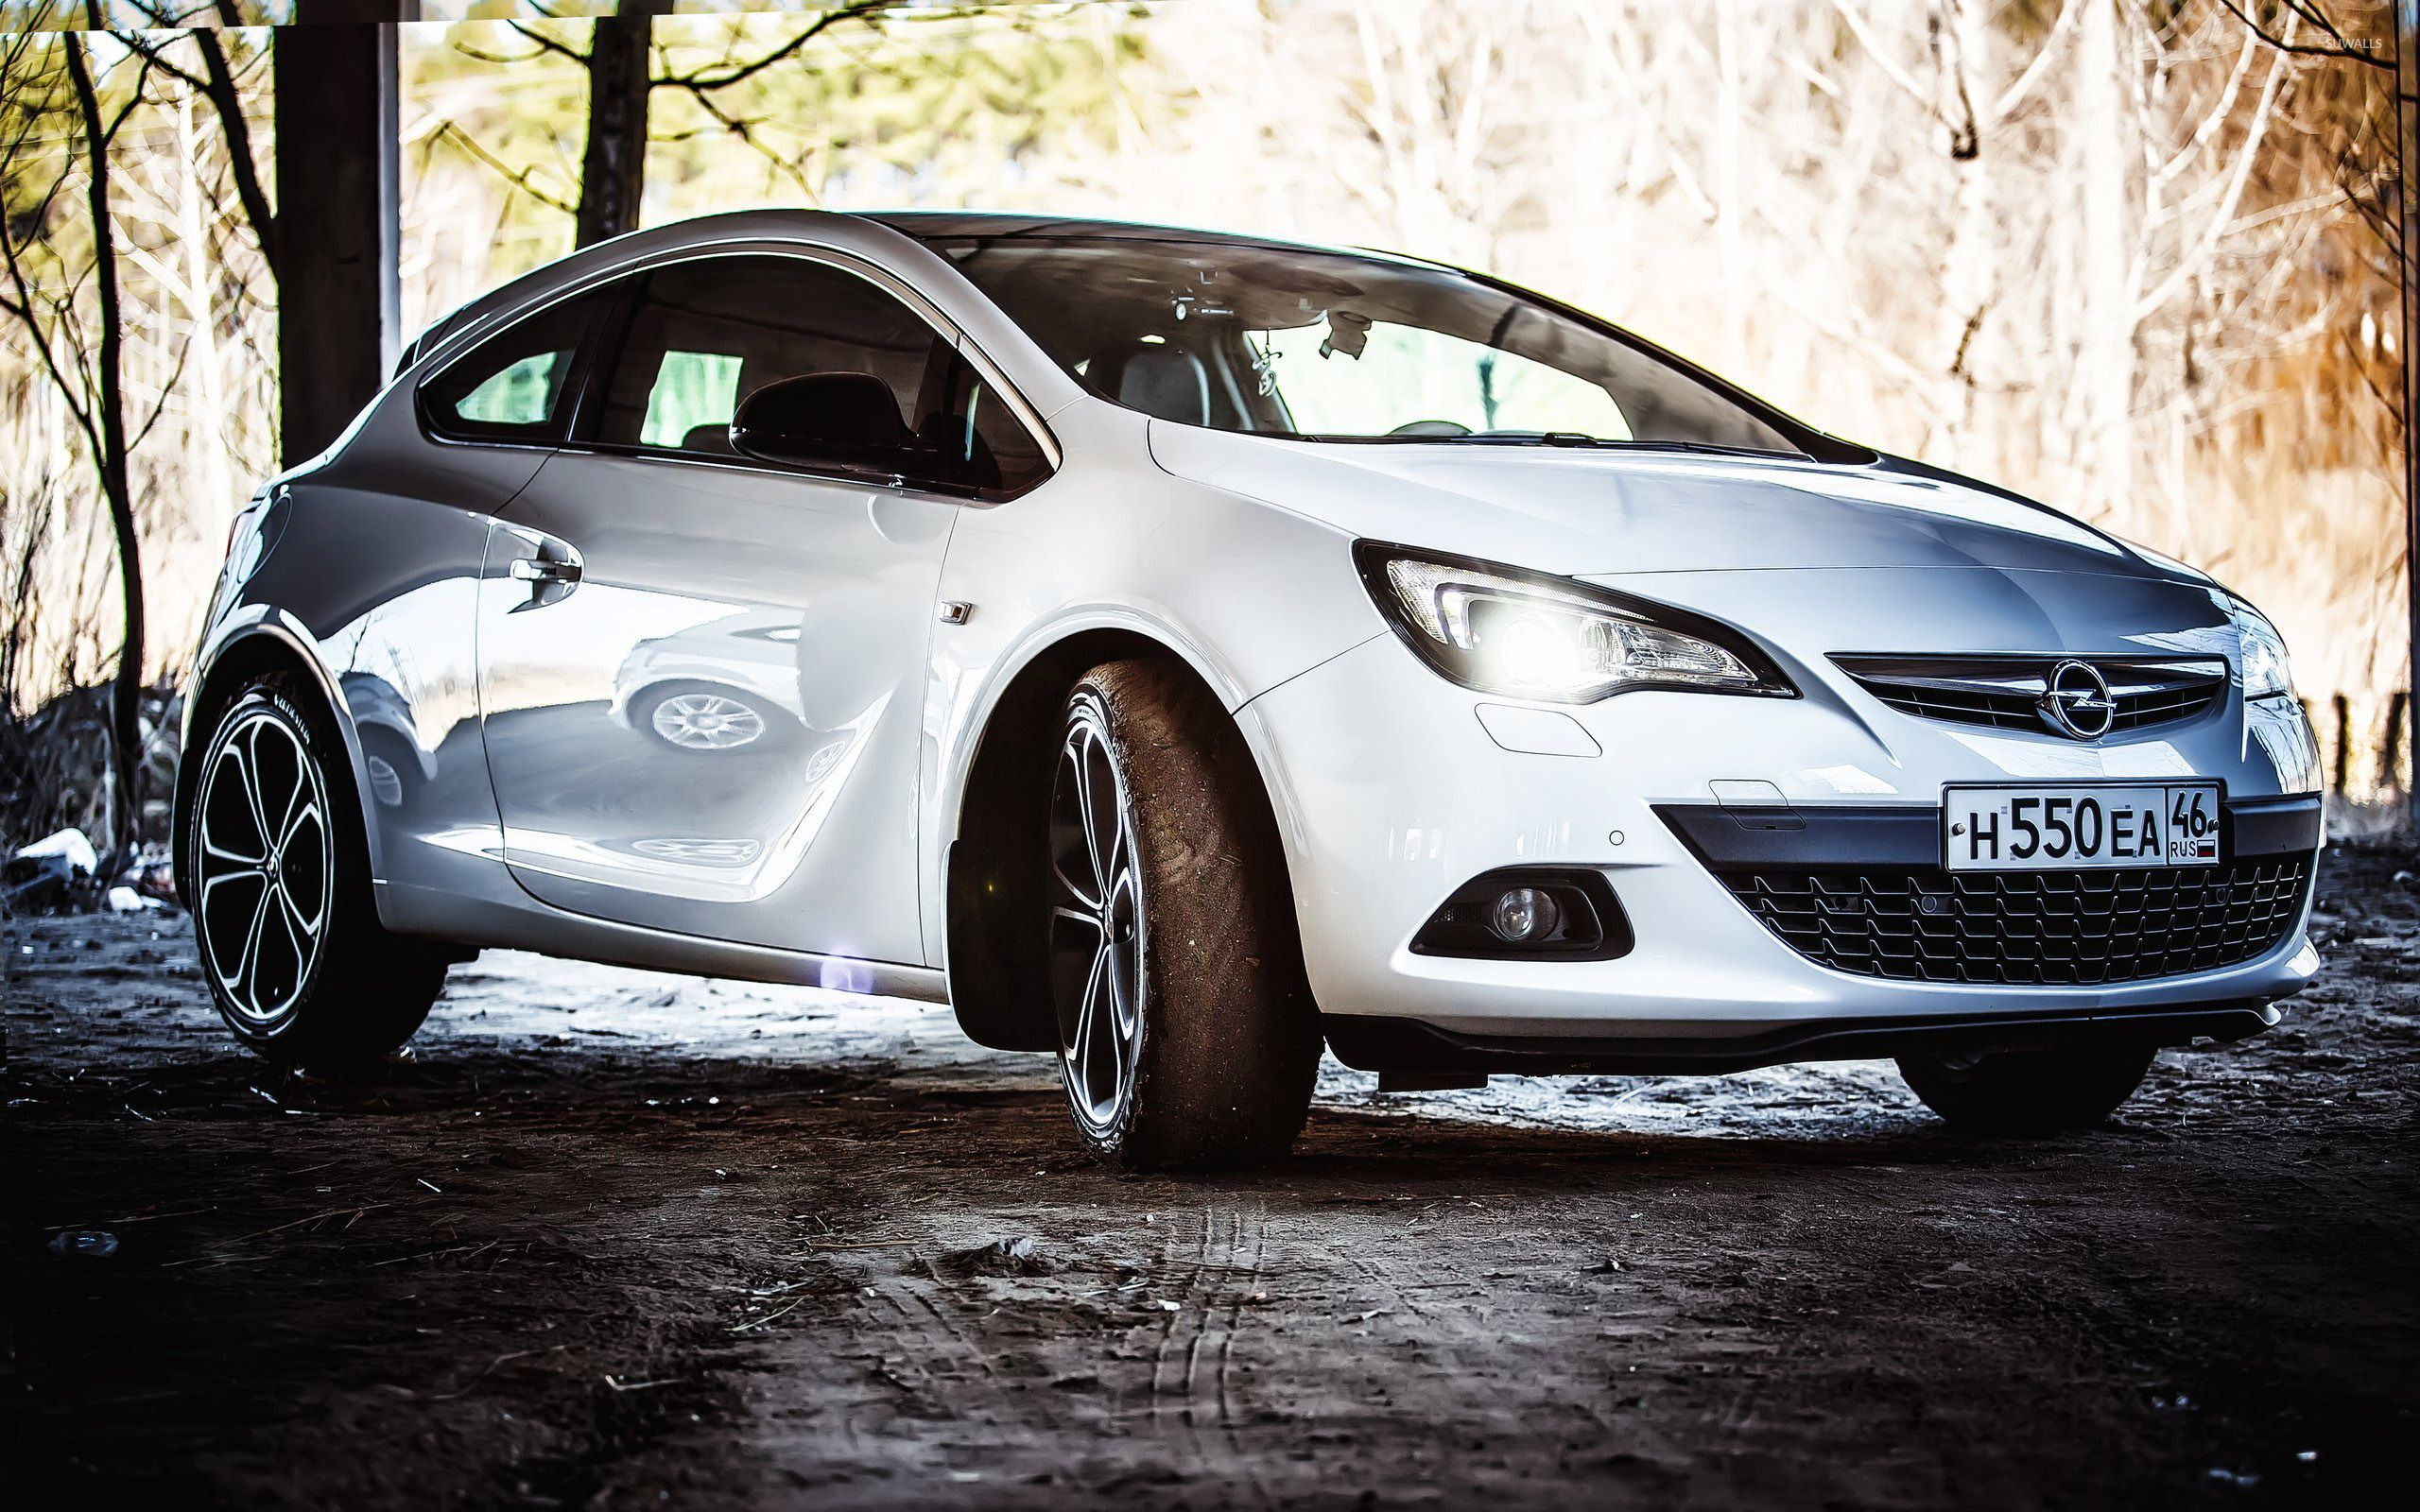 Opel Astra [4] wallpaper - Car wallpapers - #47882